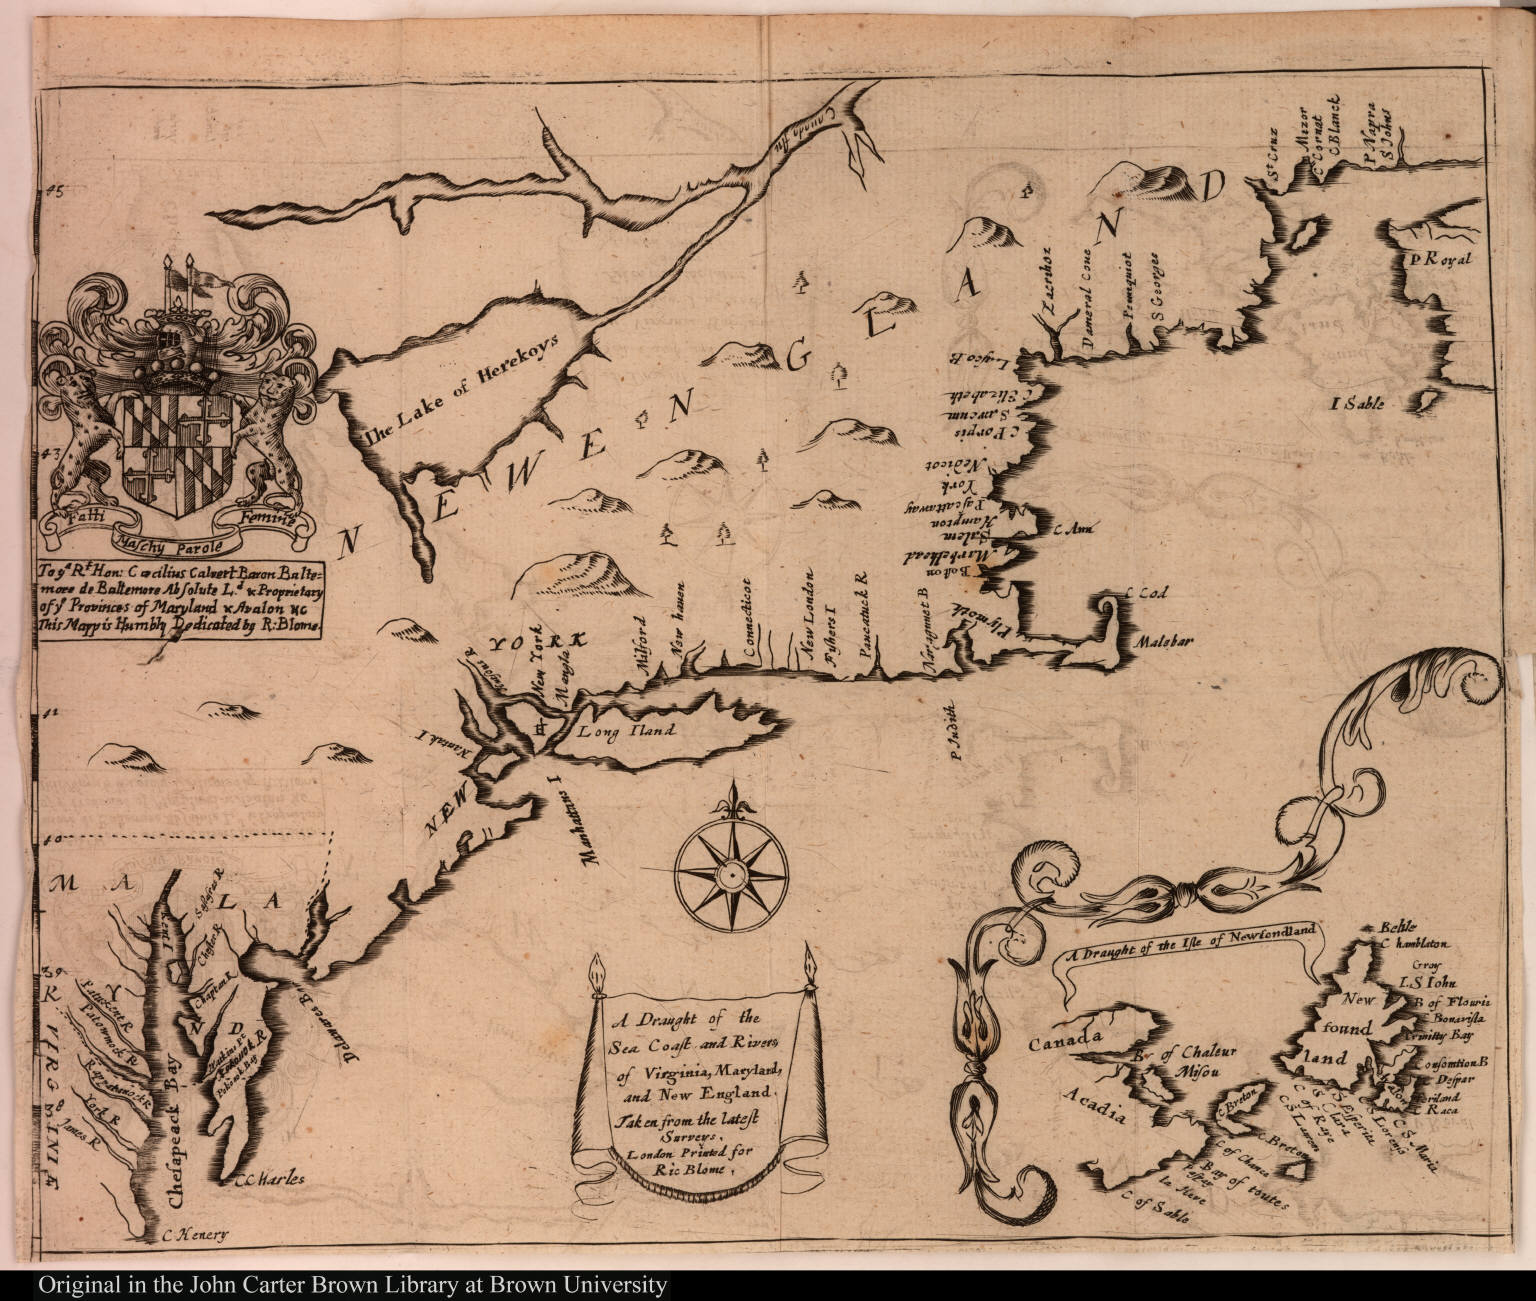 A Draught of the Sea Coast and Rivers, of Virginia, Maryland, and New England, Taken from the latest Surveys.